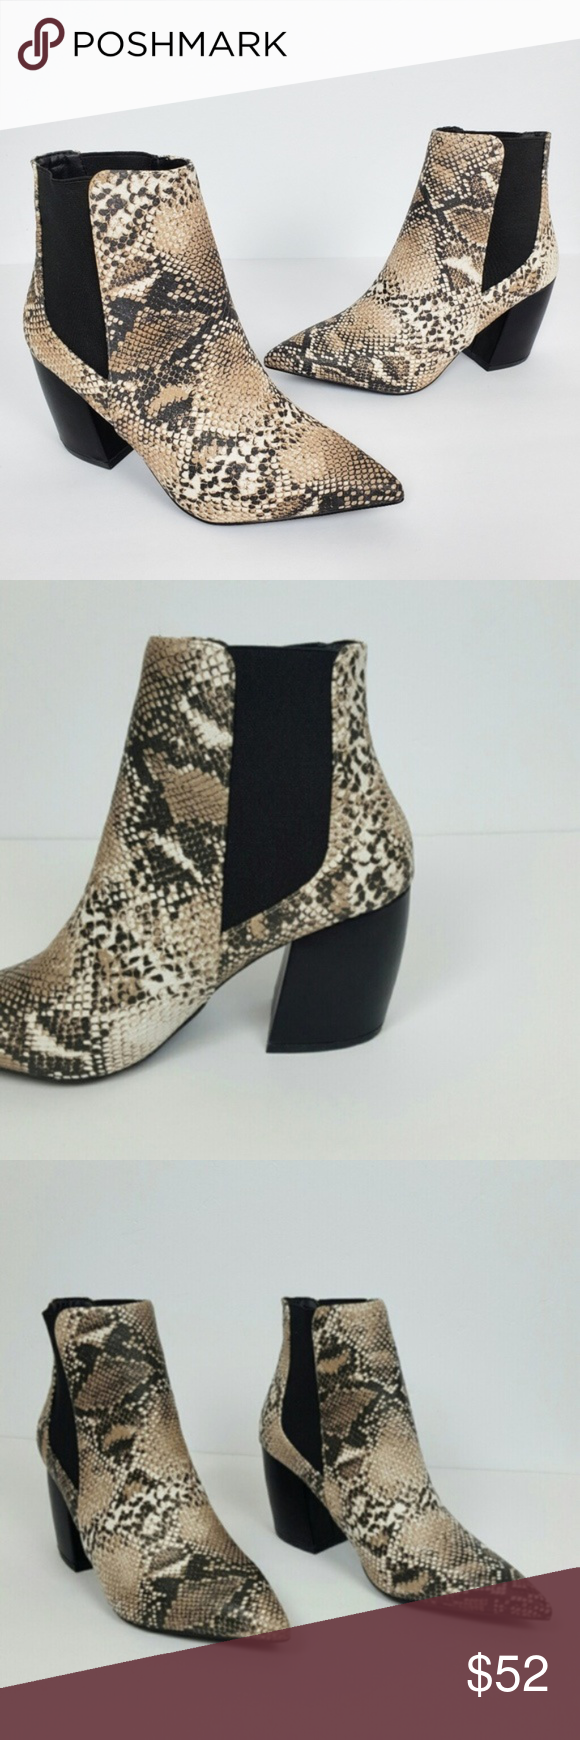 Style of Women`s Snake print Ankle Boot Love this New Style of Women`s Snake print Ankle Boot  Color Brown - Black Perfect to complement your favorite outfit and be ready for the day! Material: PU LEATHER Heel high : 3